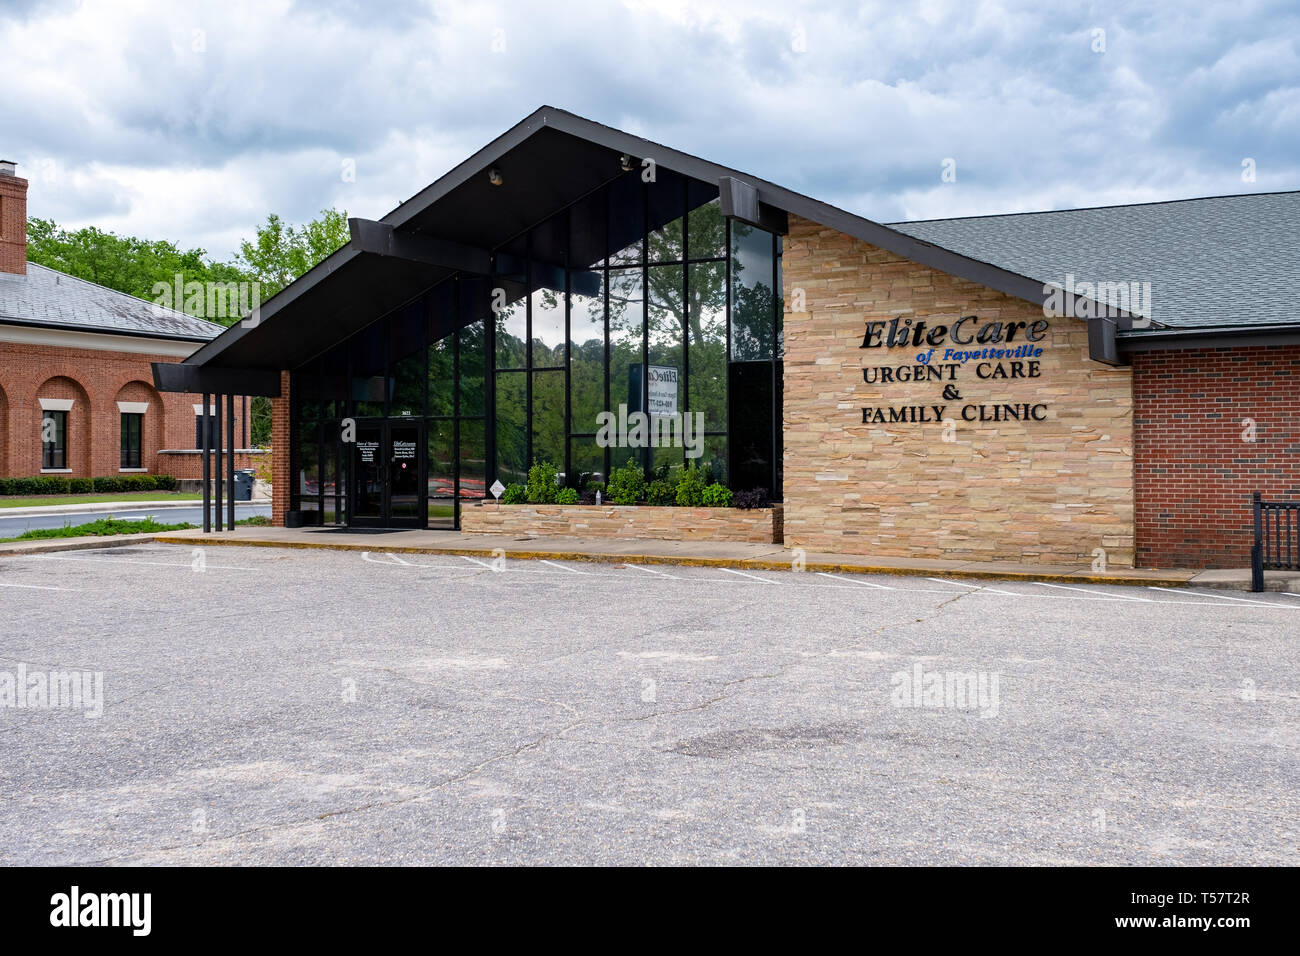 HOPE MILLS, NC - CIRCA April 2019 : Elite Care of Fayetteville Urgent Care Family Clinic Stock Photo